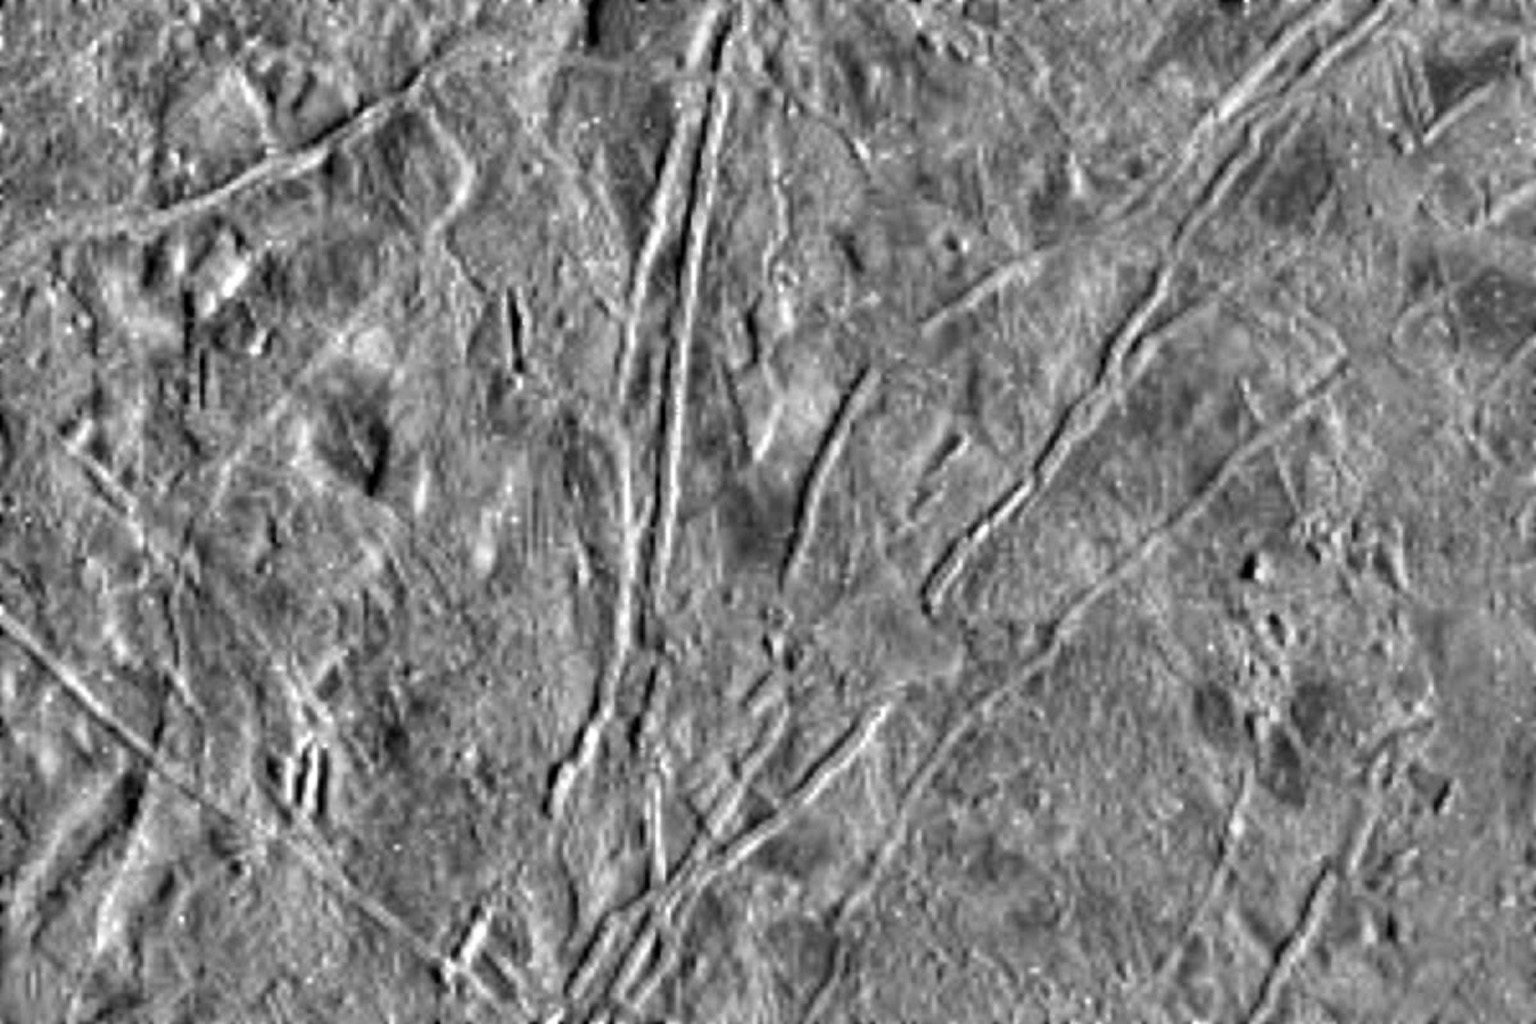 The icy surface of Europa, one of the moons of Jupiter, was photographed by NASA's Galileo spacecraft on its fourth orbit around Jupiter.